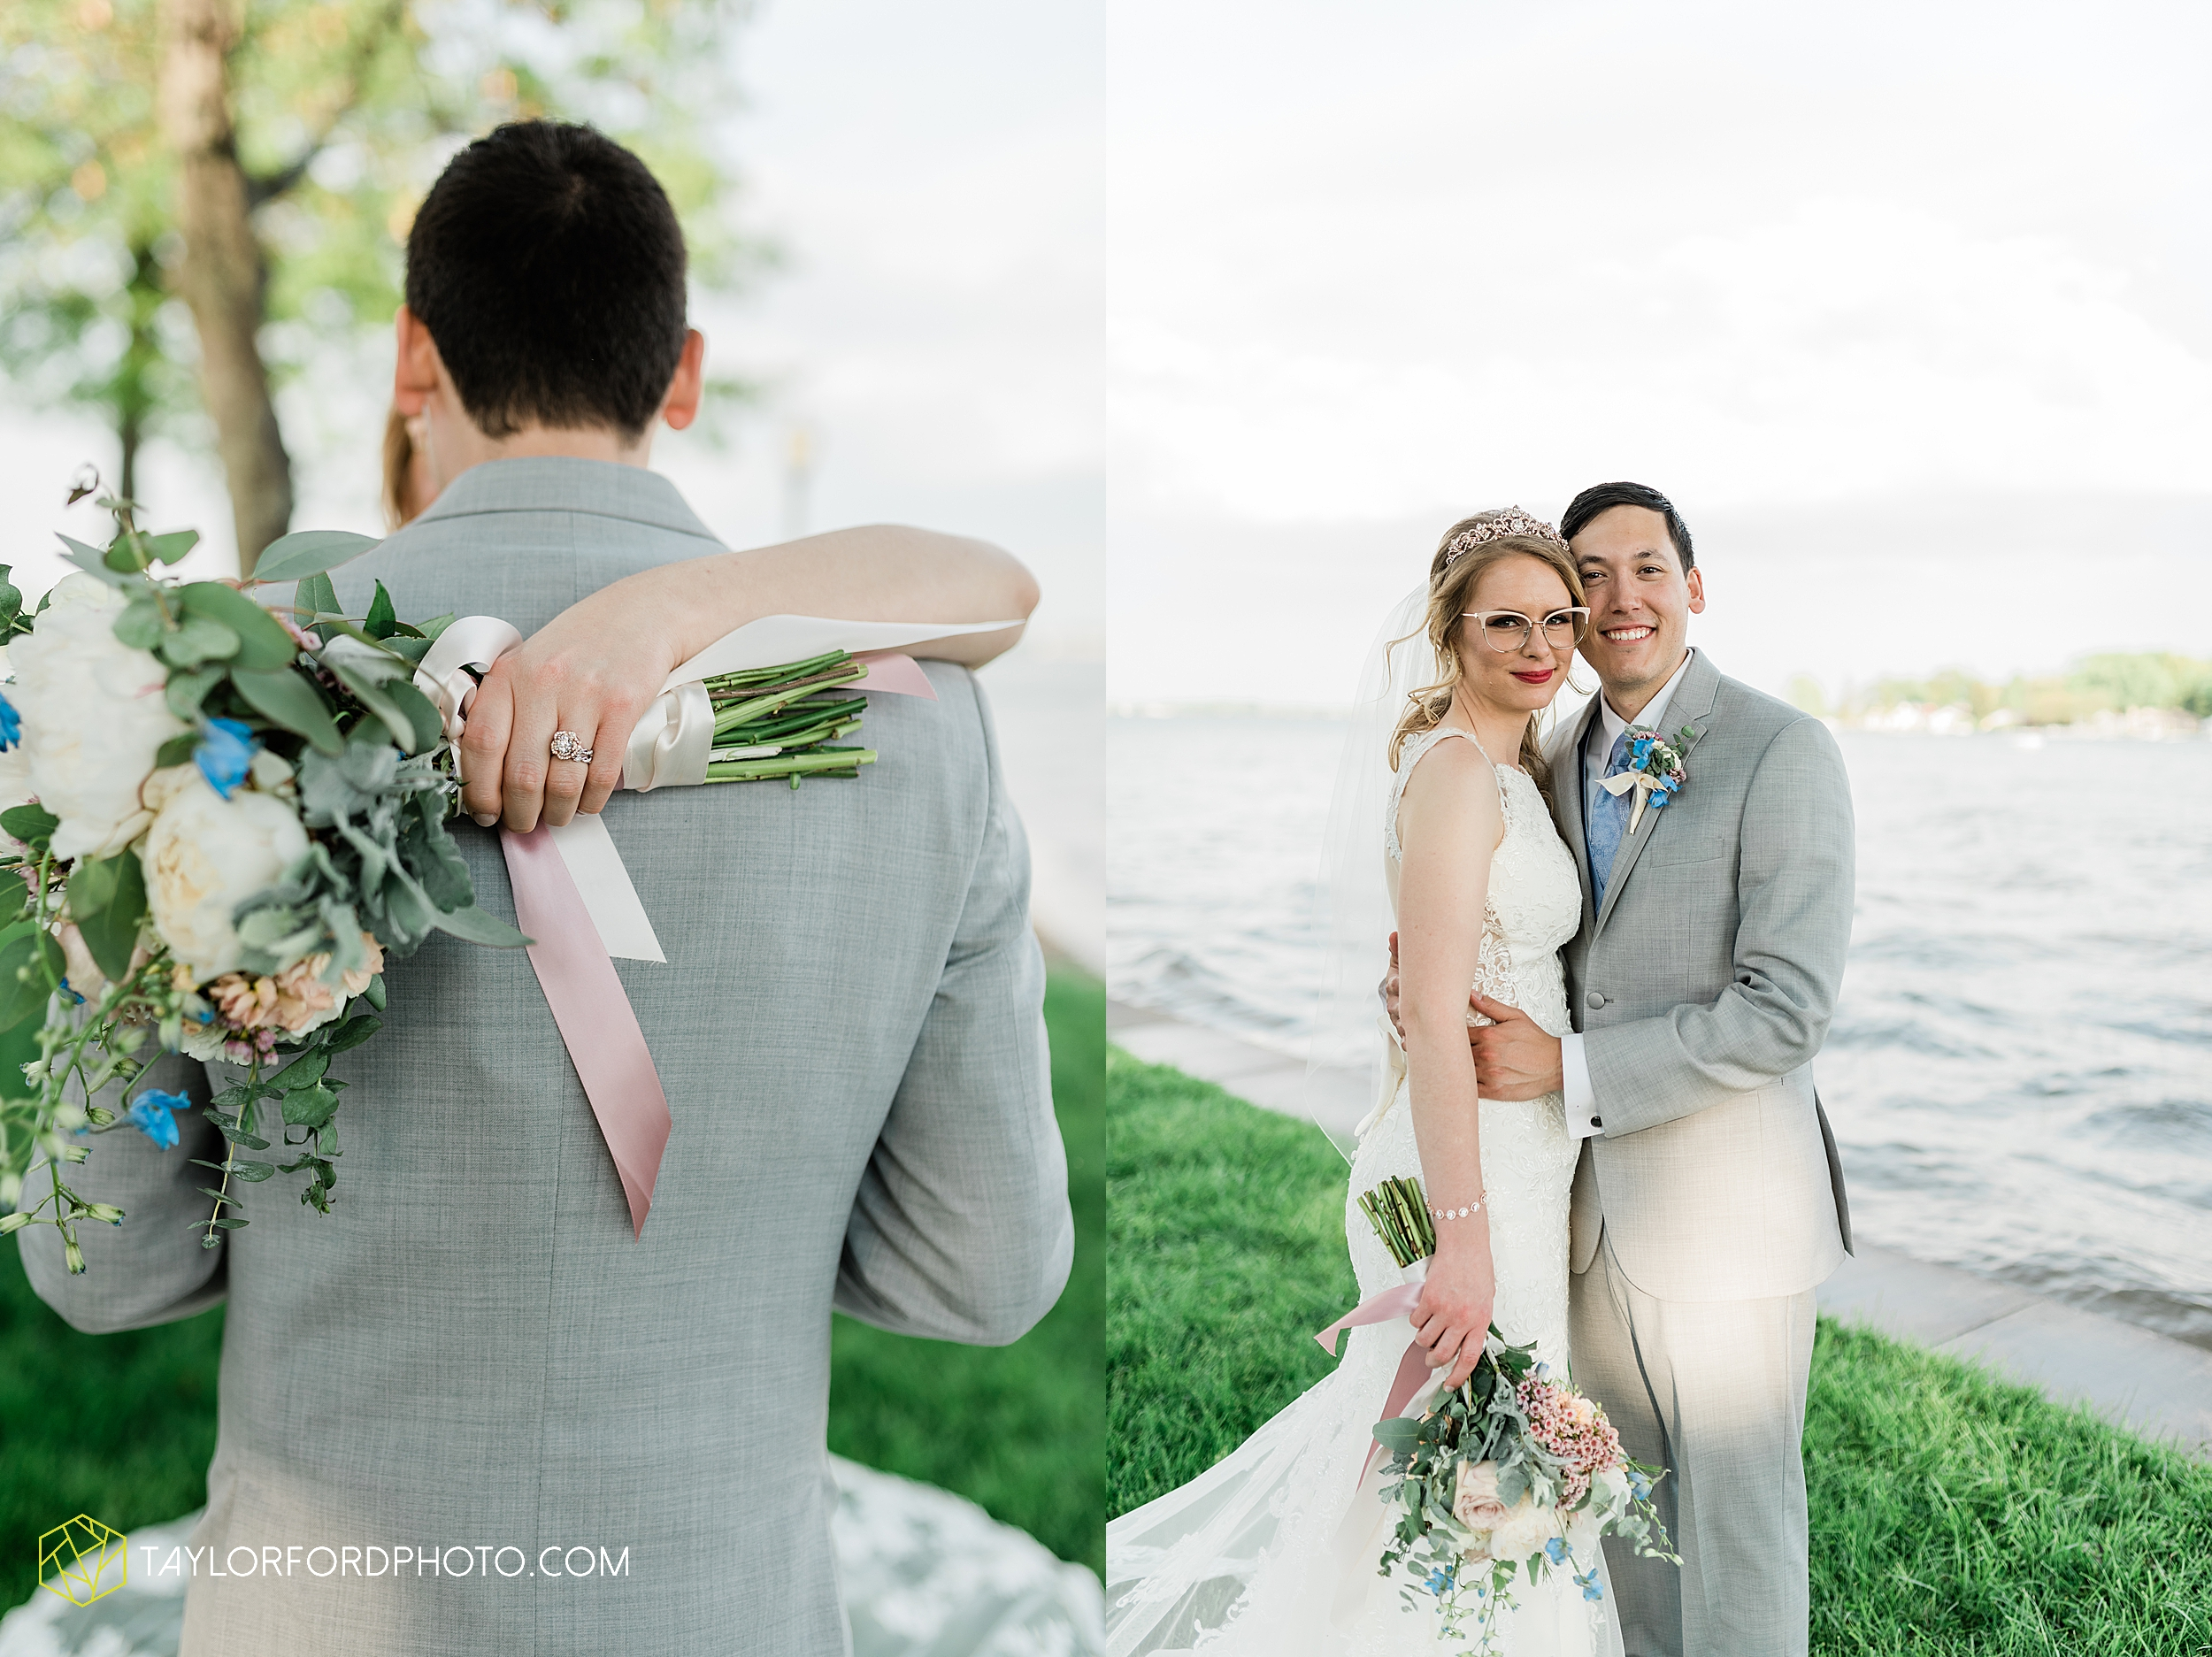 janine-shaun-oakwood-resort-syracuse-indiana-lake-wawasee-wedding-hilltop-one-fine-day-photographer-photography-taylor-ford-hirschy-photographer_2779.jpg